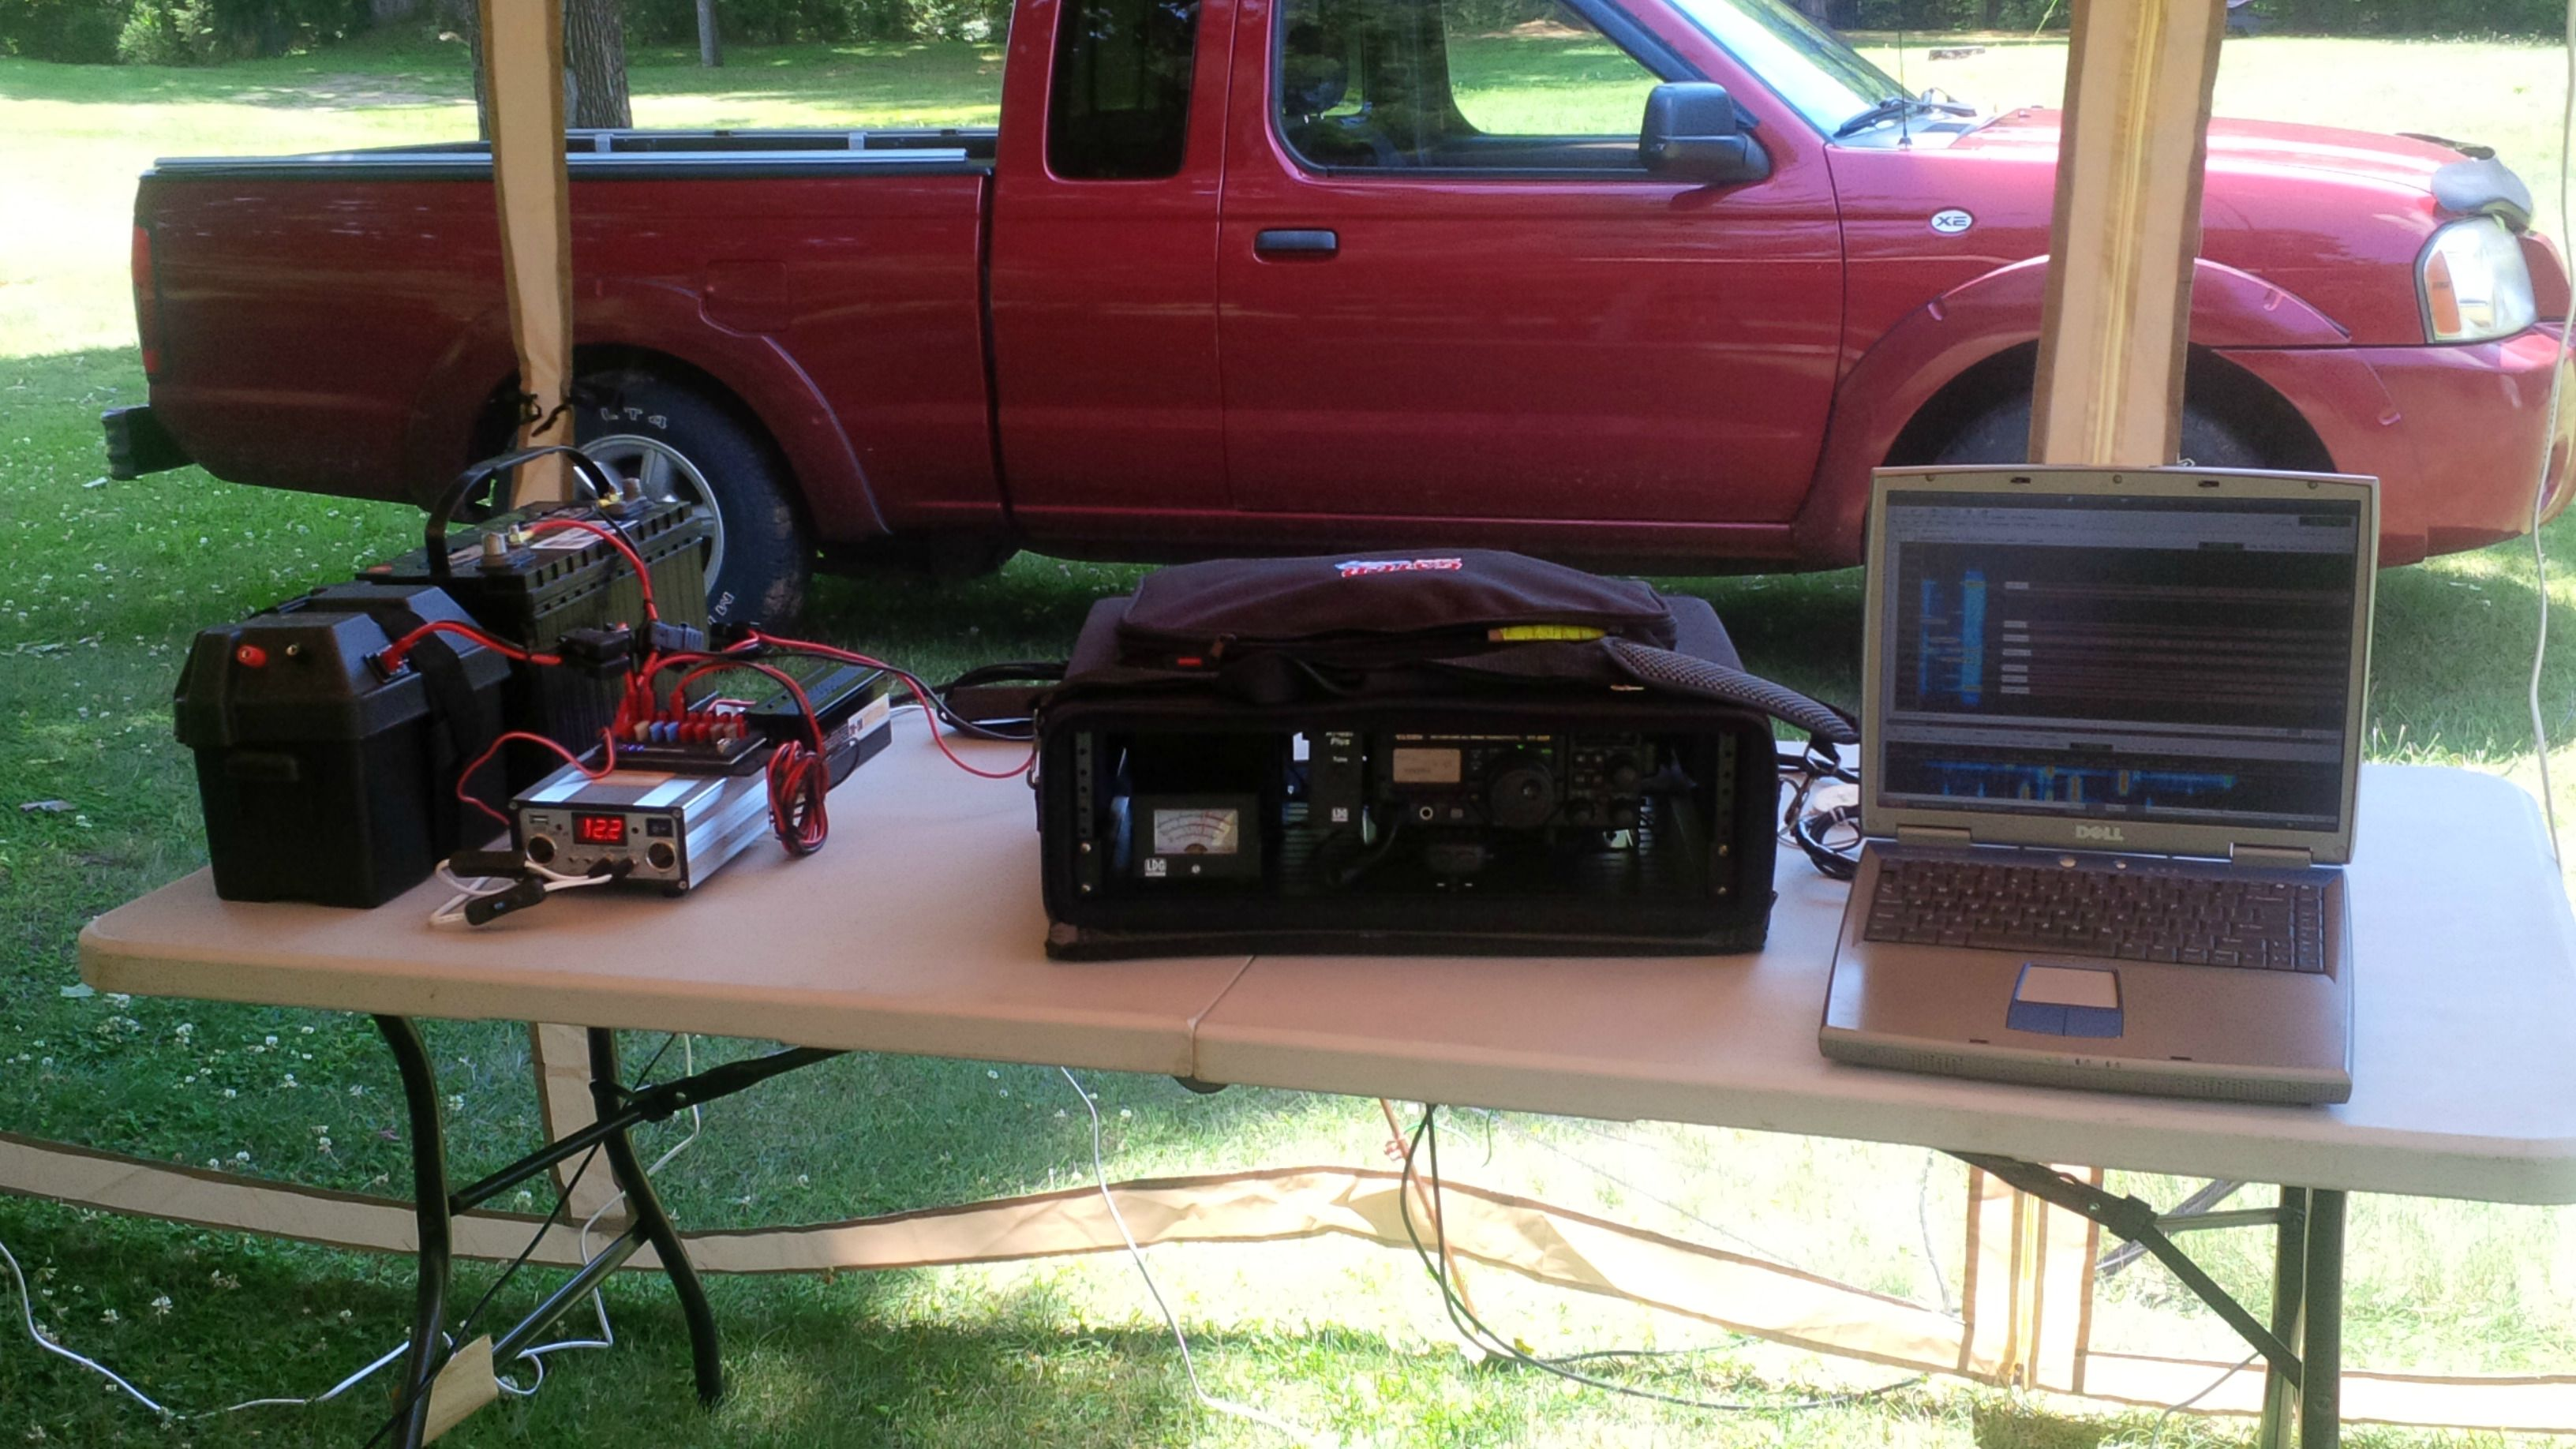 3-k2jji-field-day-2014-5a-nny-digital-station-op-table